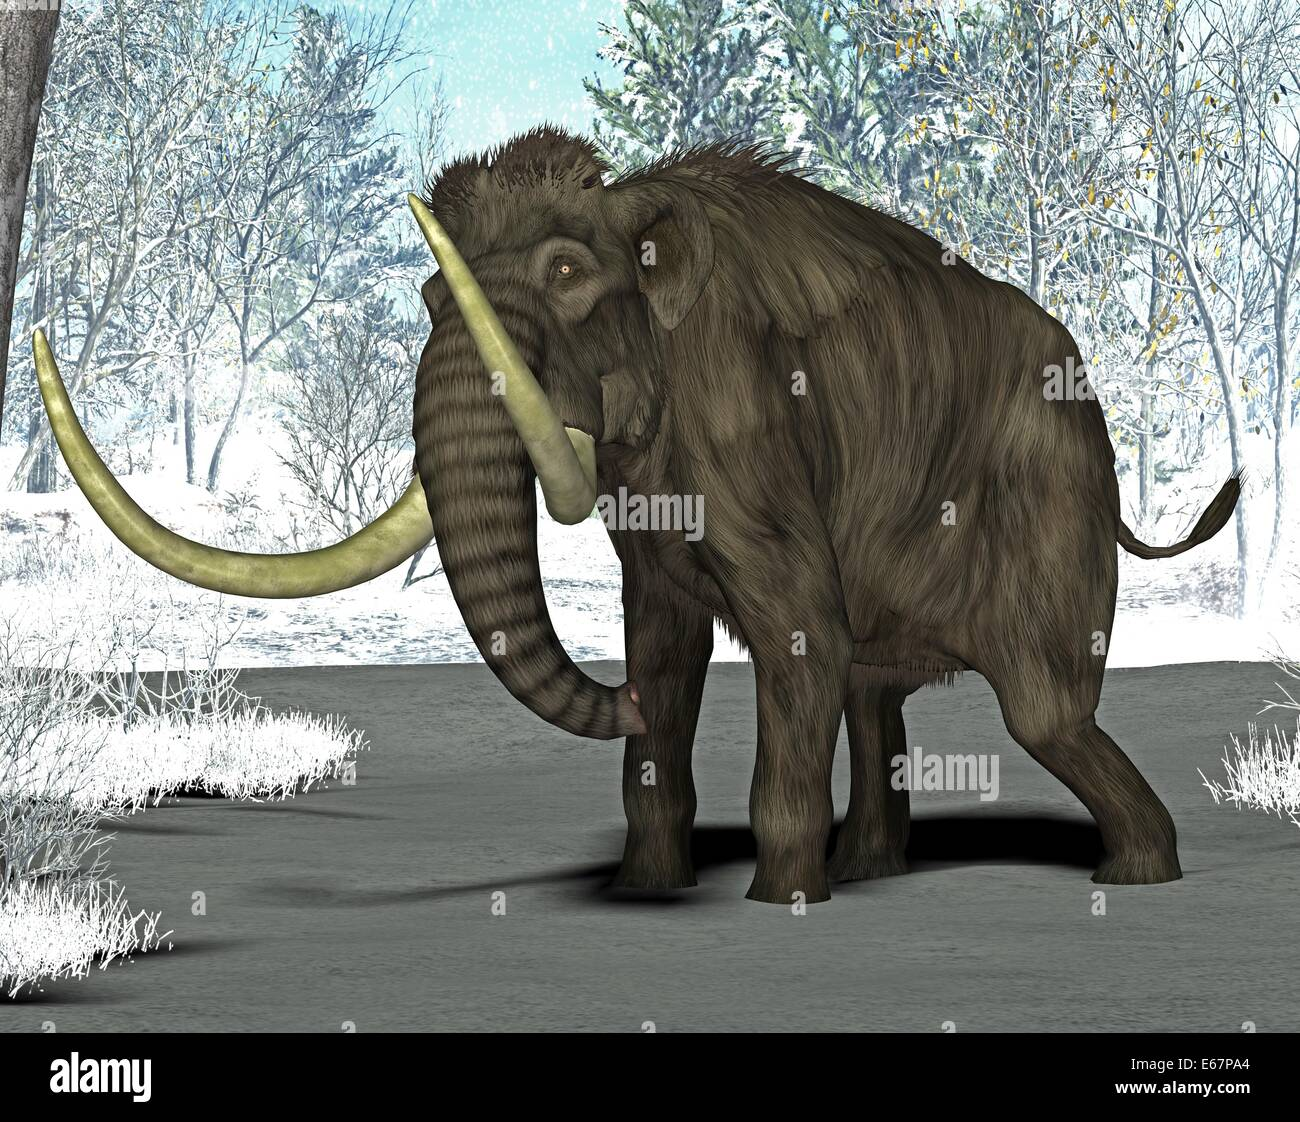 Mammut / Mammoth - Stock Image